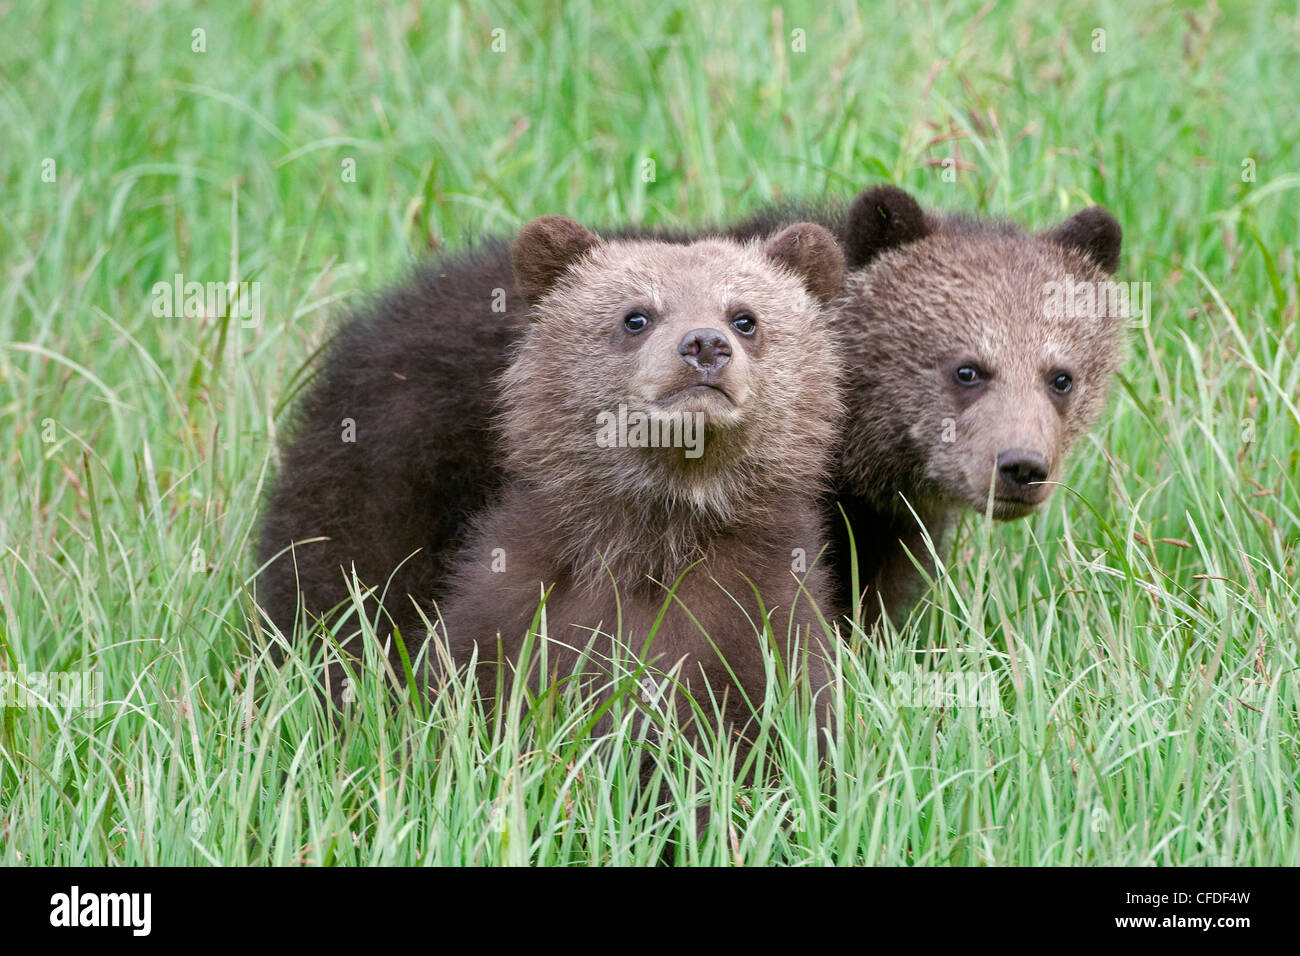 Grizzly bear twins ursus Arctos look curiousity - Stock Image